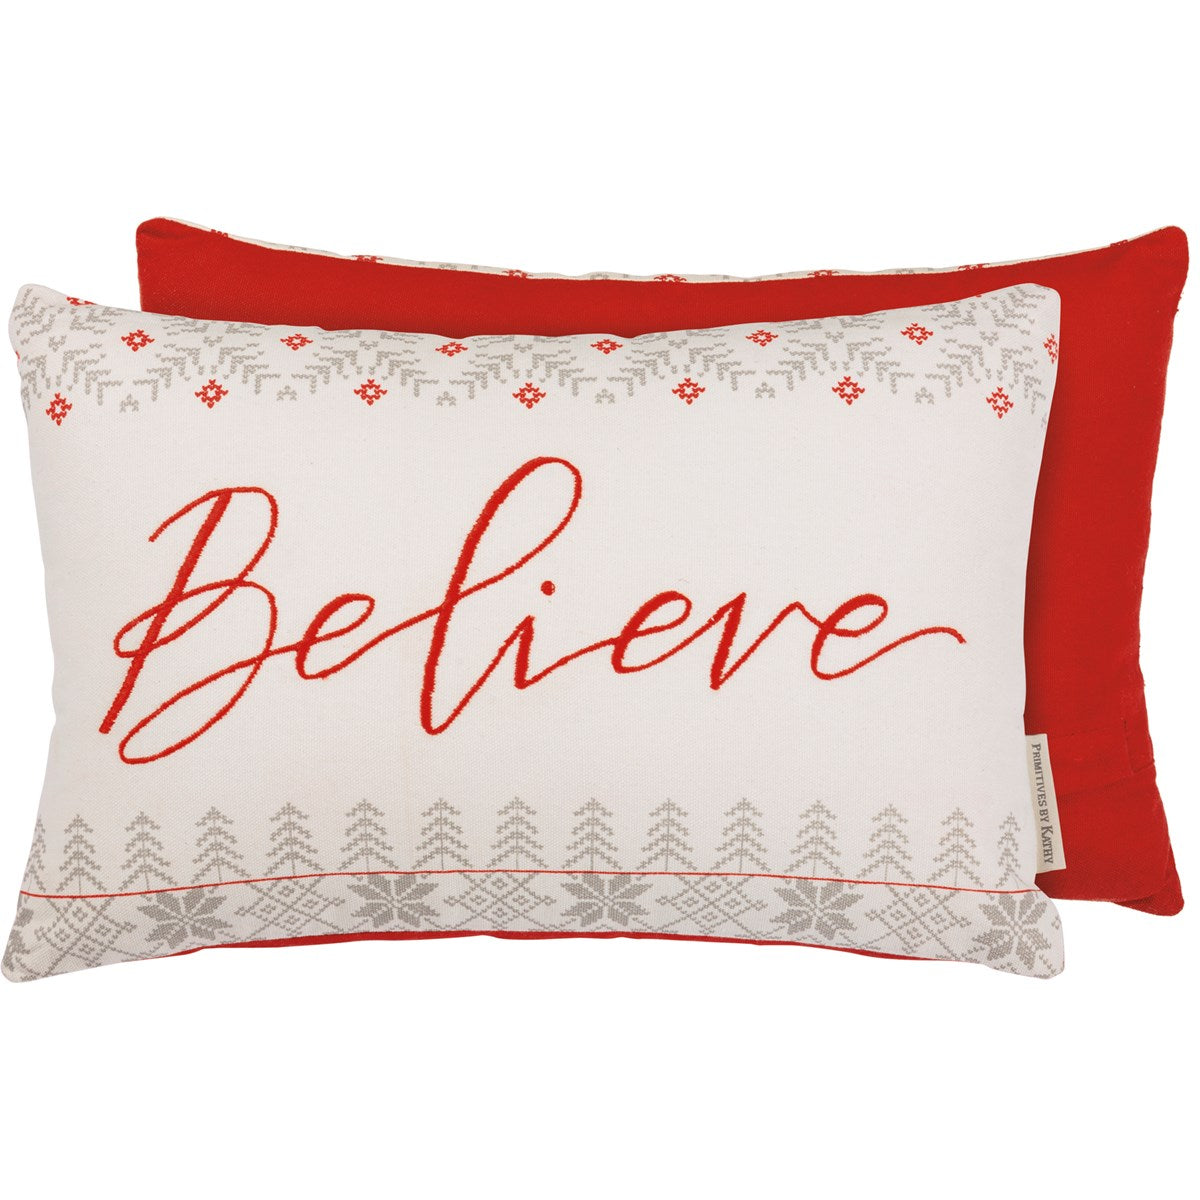 Pillow - Believe